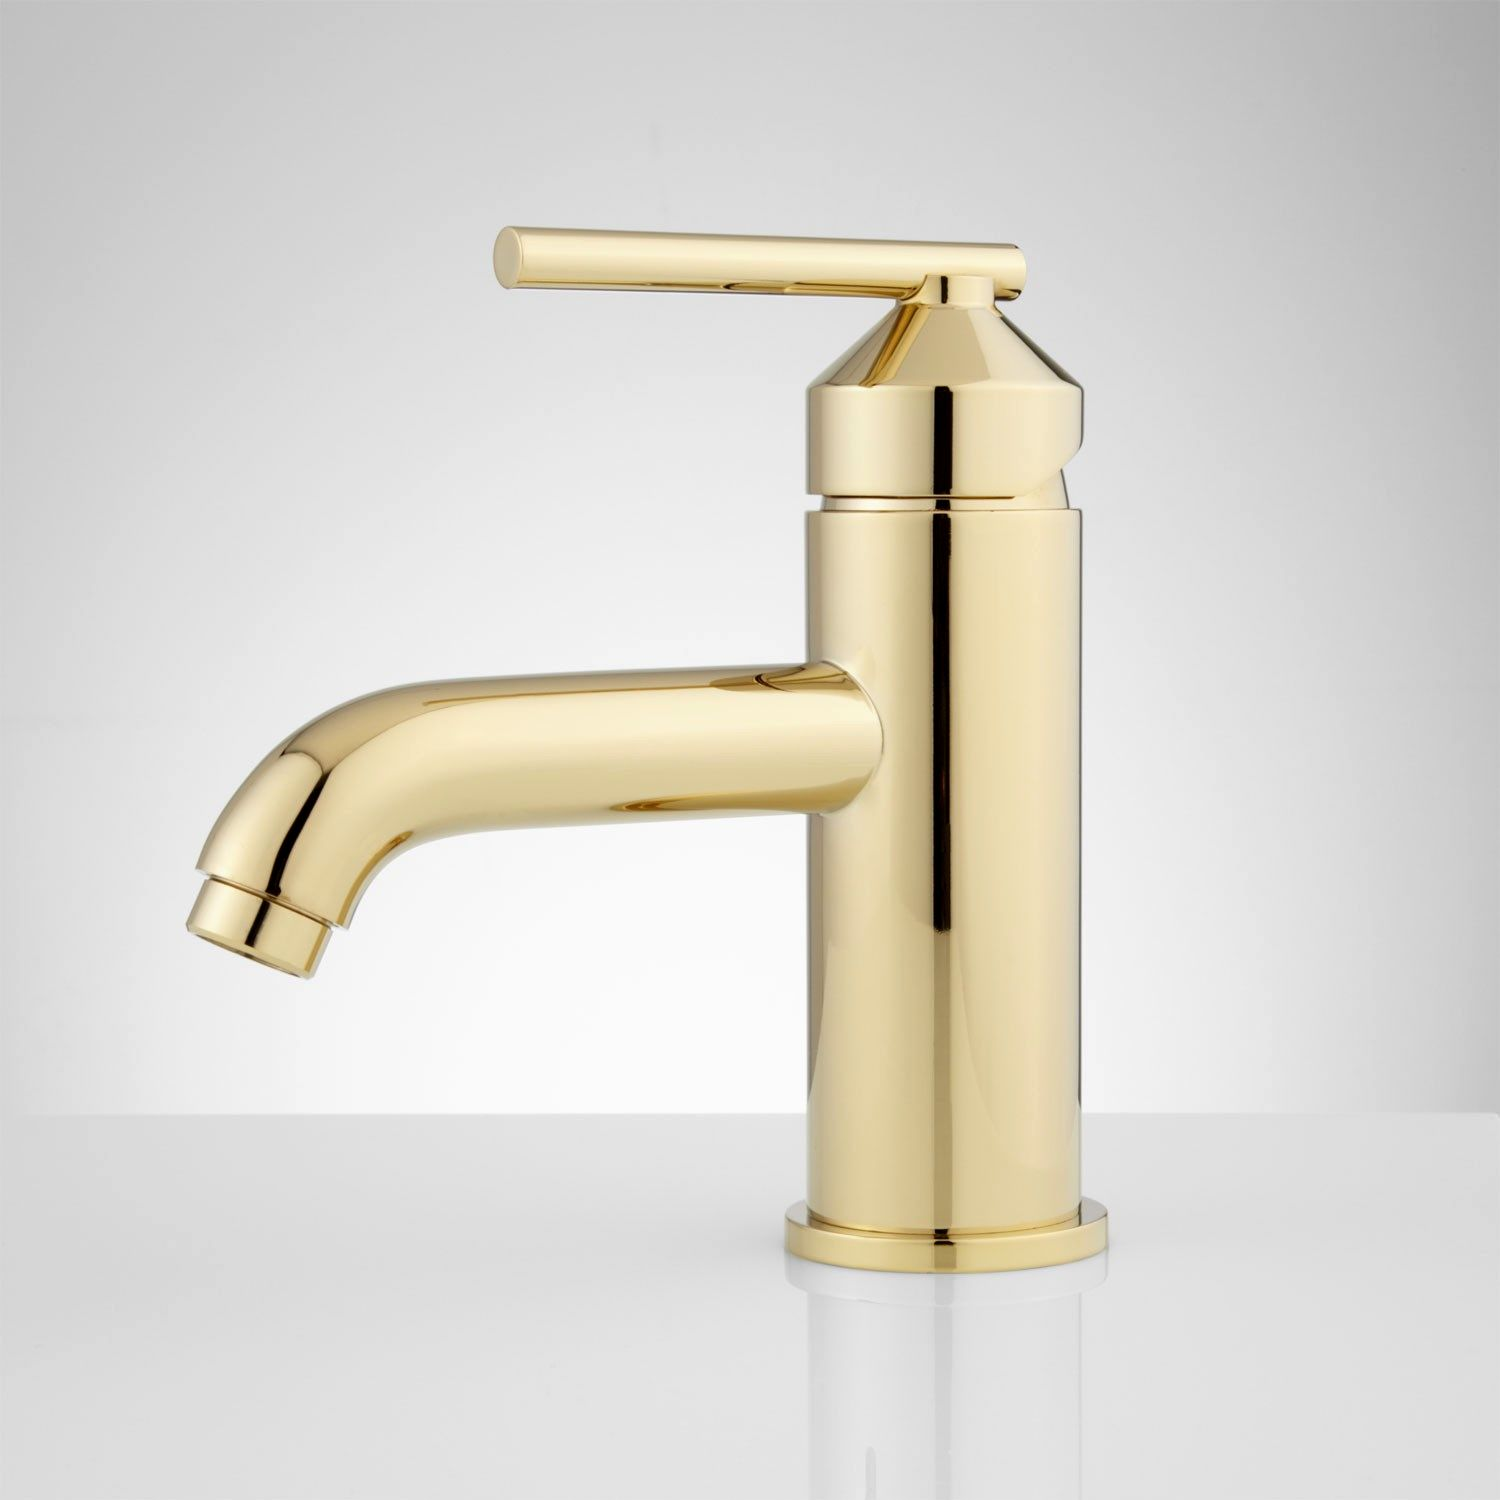 top chrome faucets bathroom inspiration-New Chrome Faucets Bathroom Inspiration